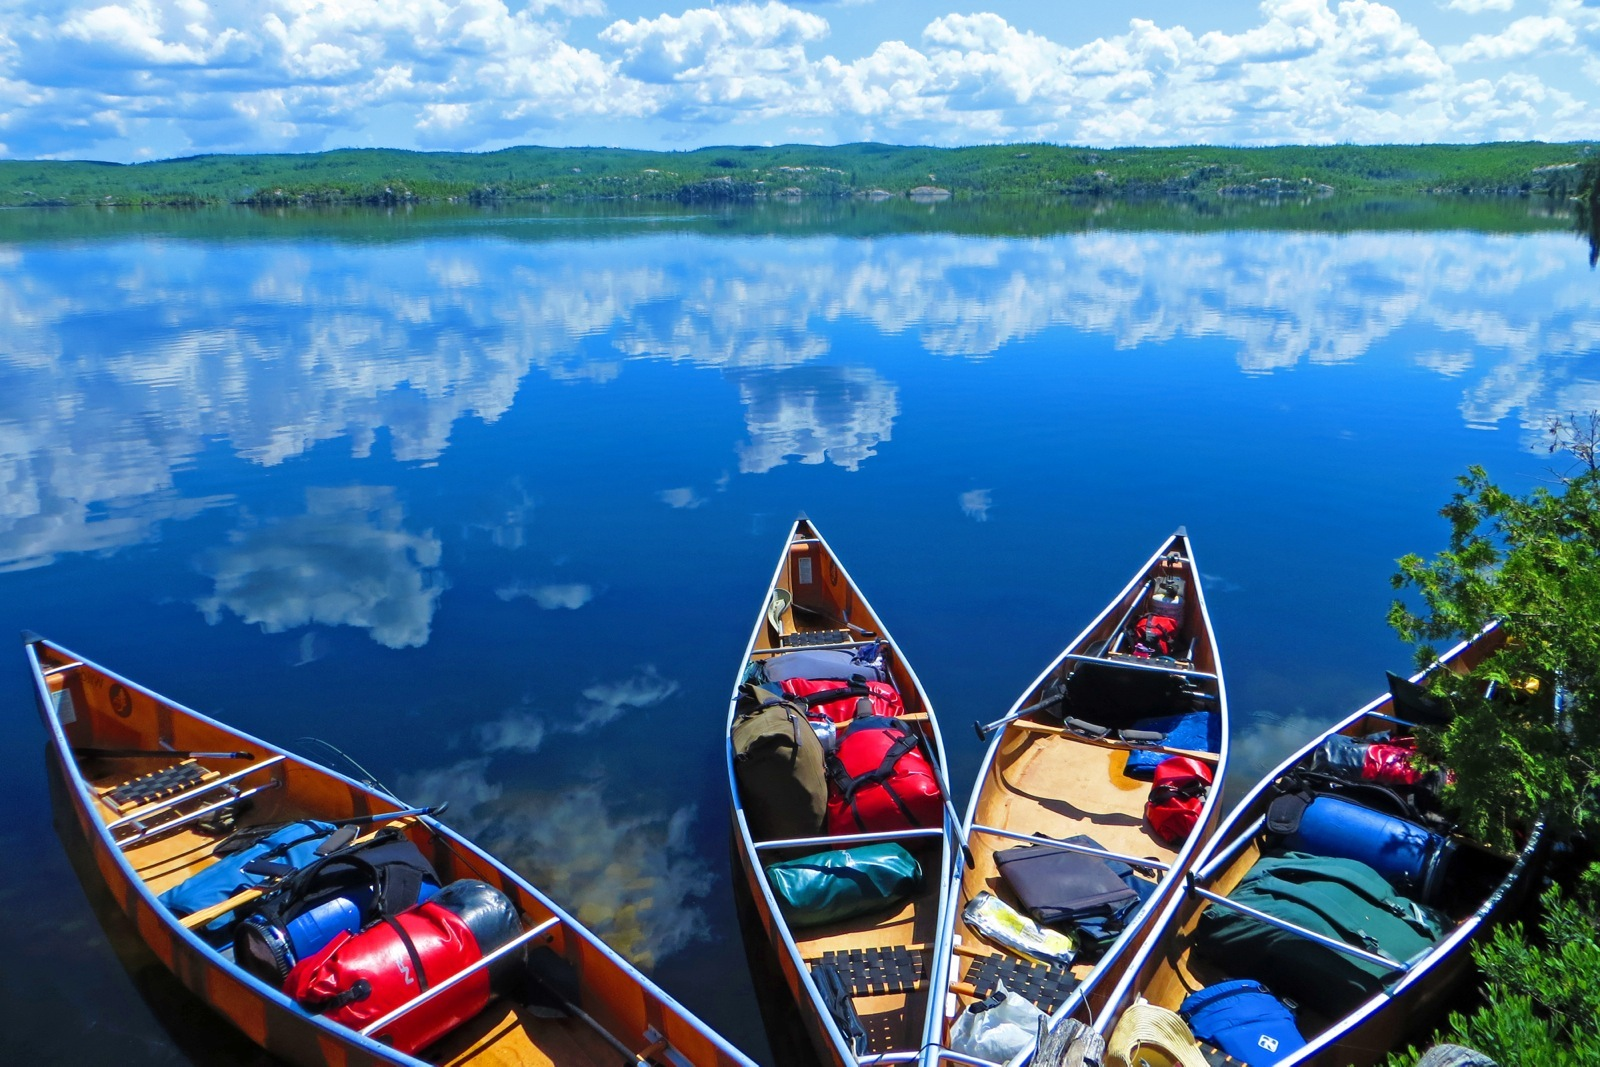 Boundary waters canoe trip familytravel.com